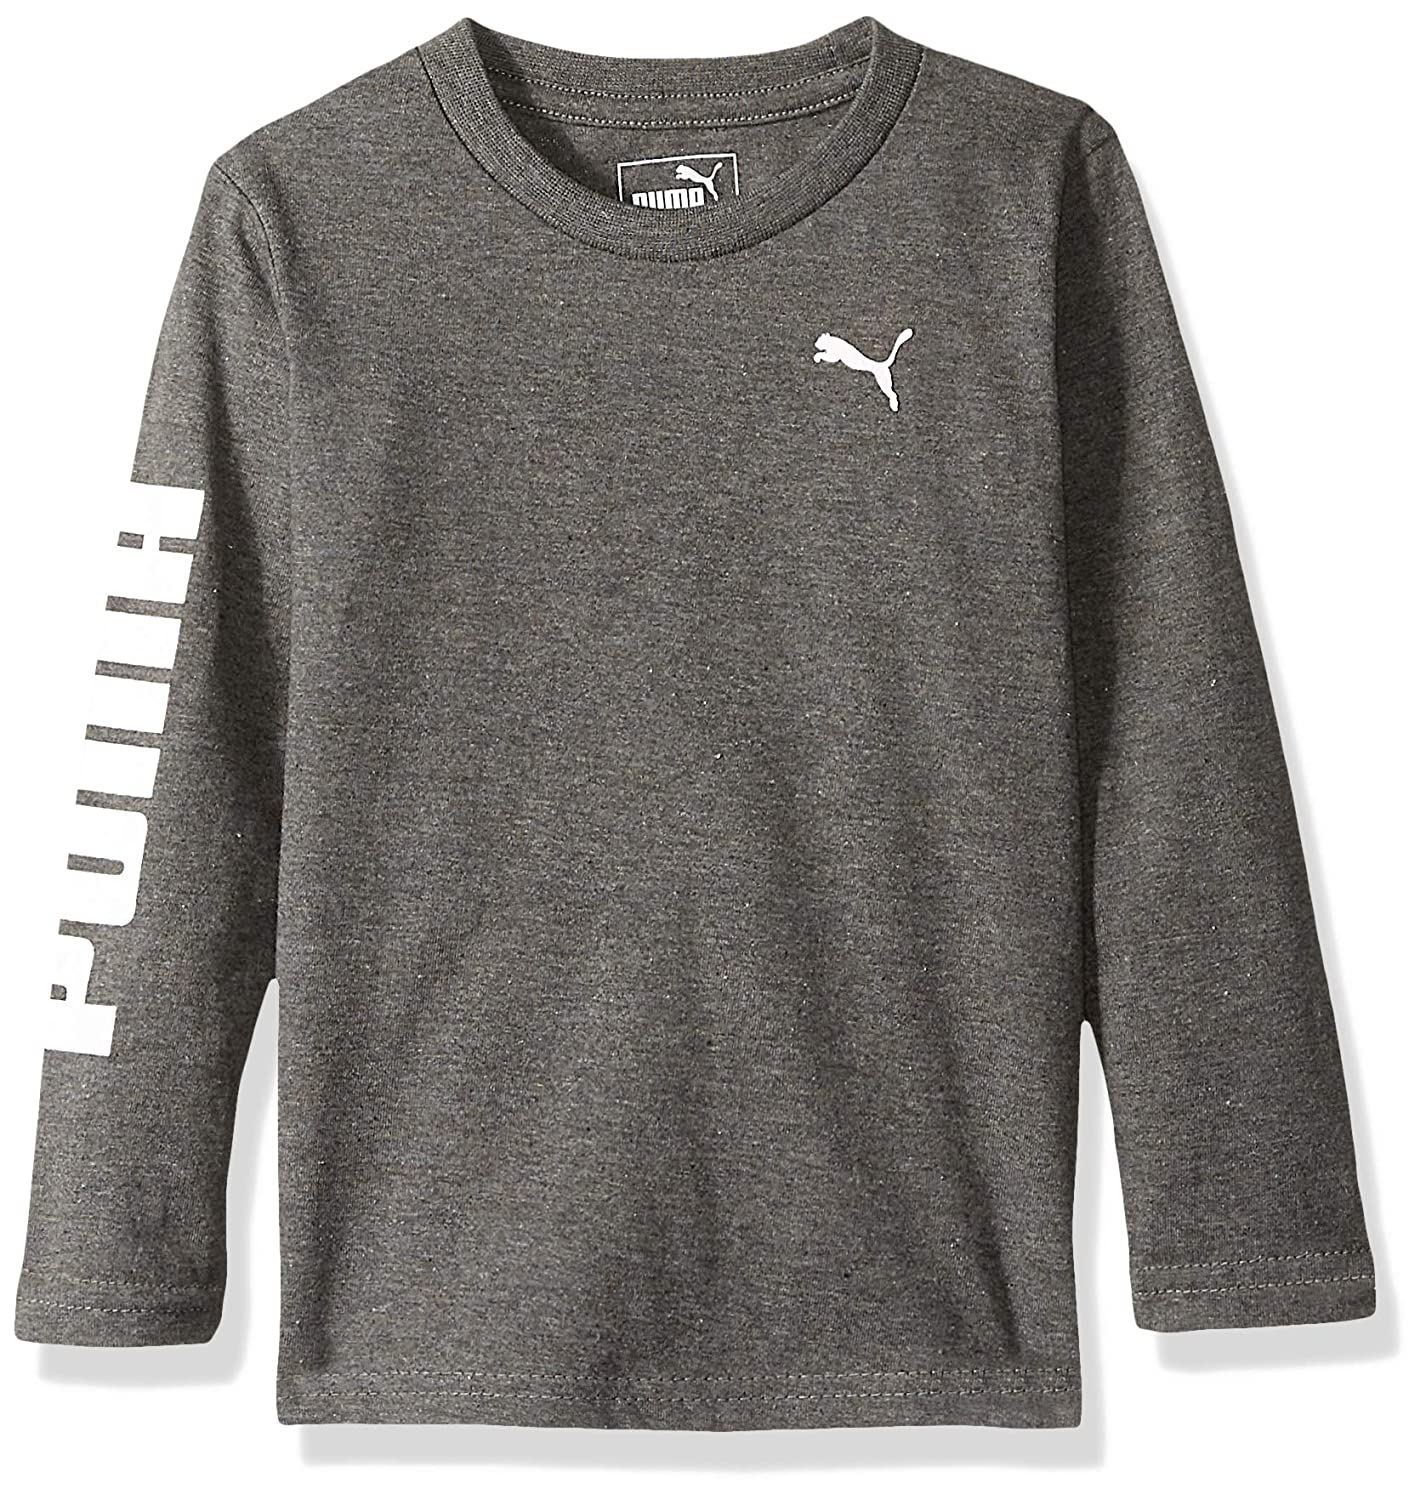 PUMA Toddler Boys Long Sleeve T-Shirt